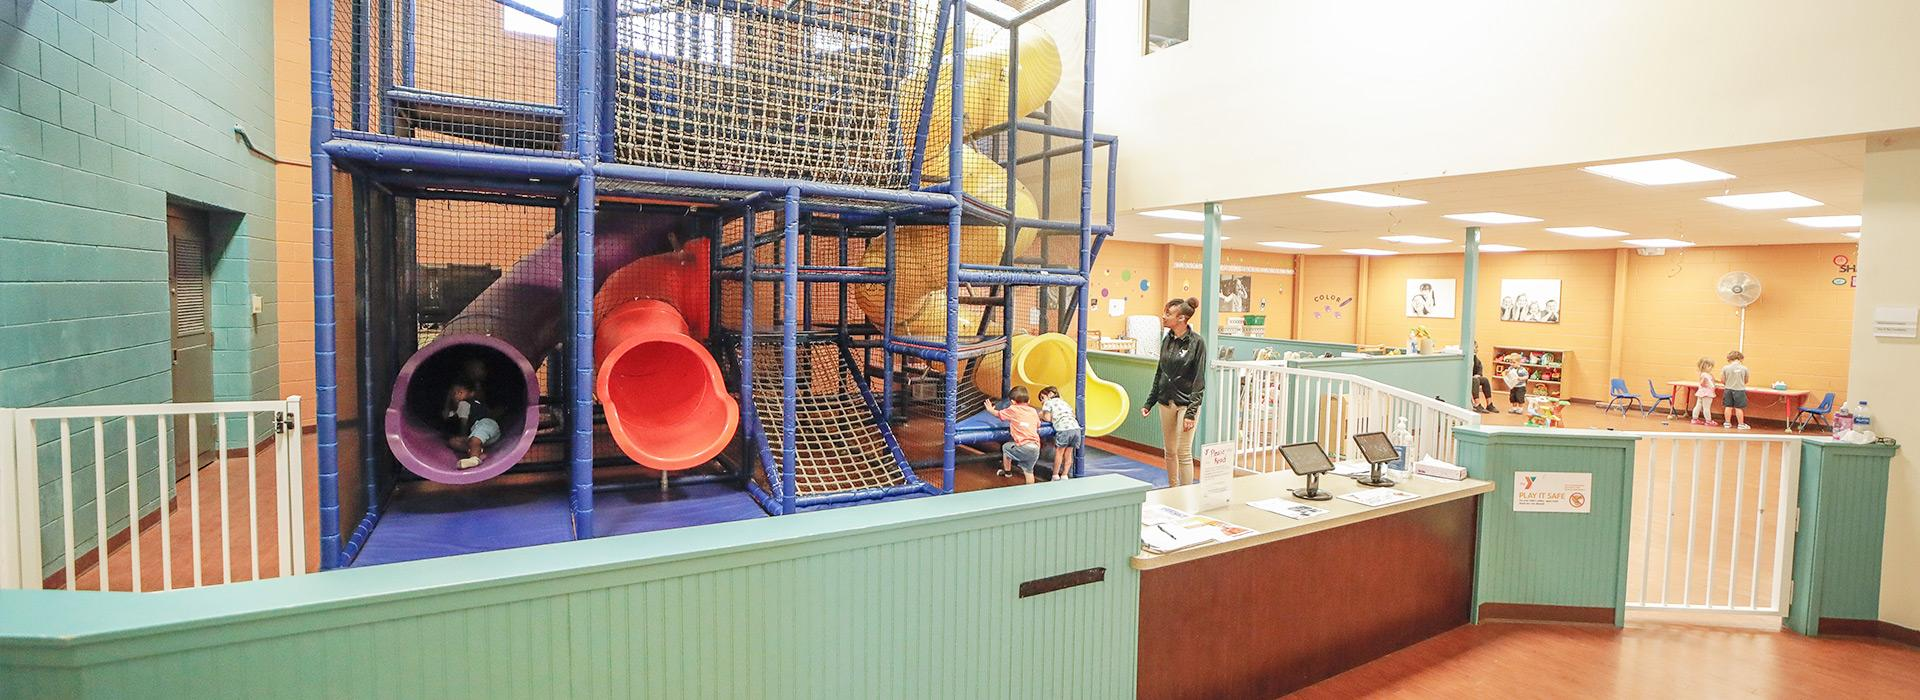 Play area gym structure for kids